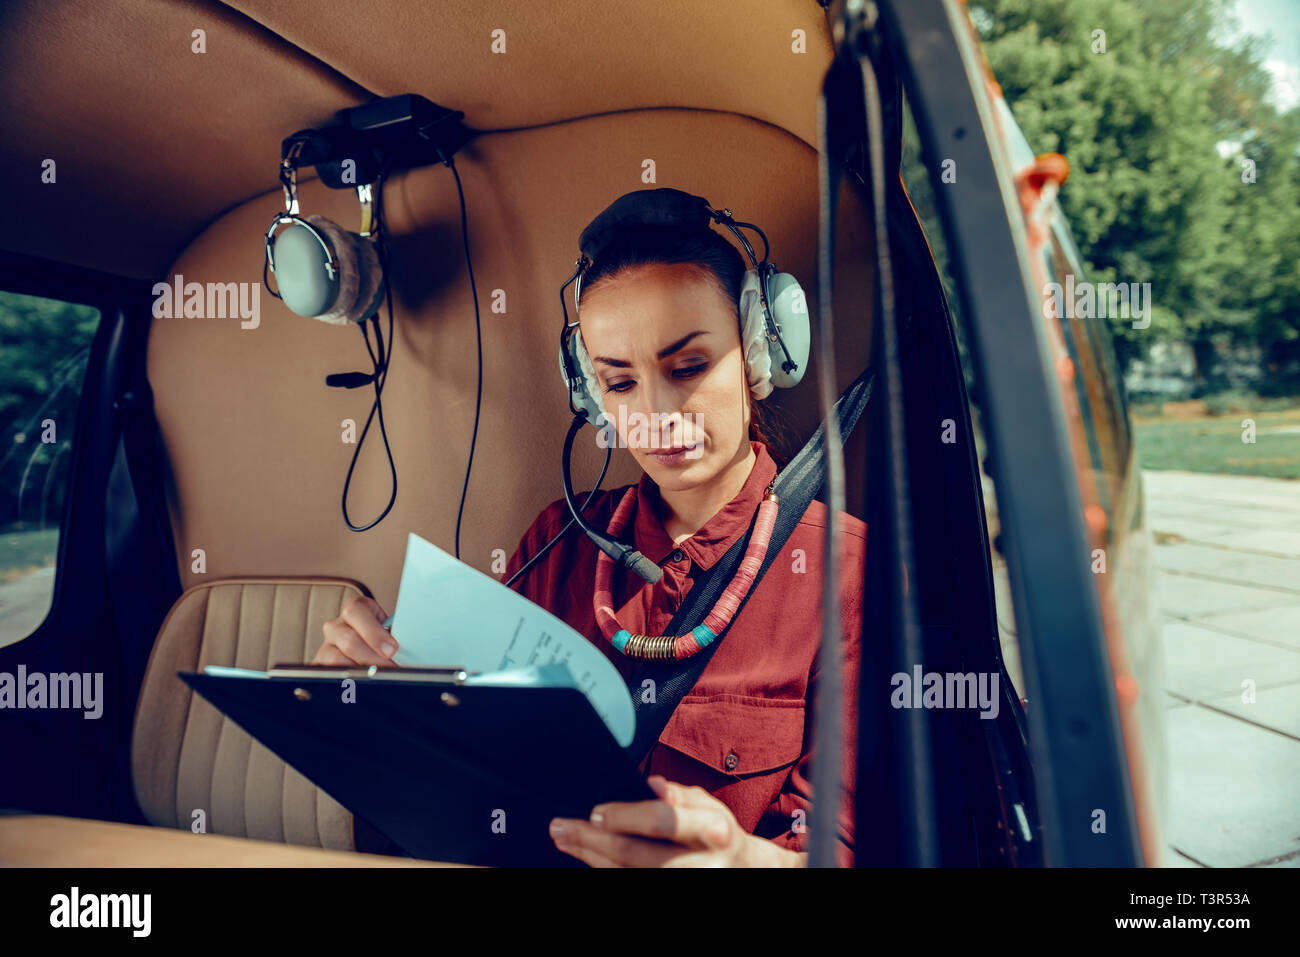 Concentrated dark-haired businesswoman flipping through documents while wearing headphones - Stock Image